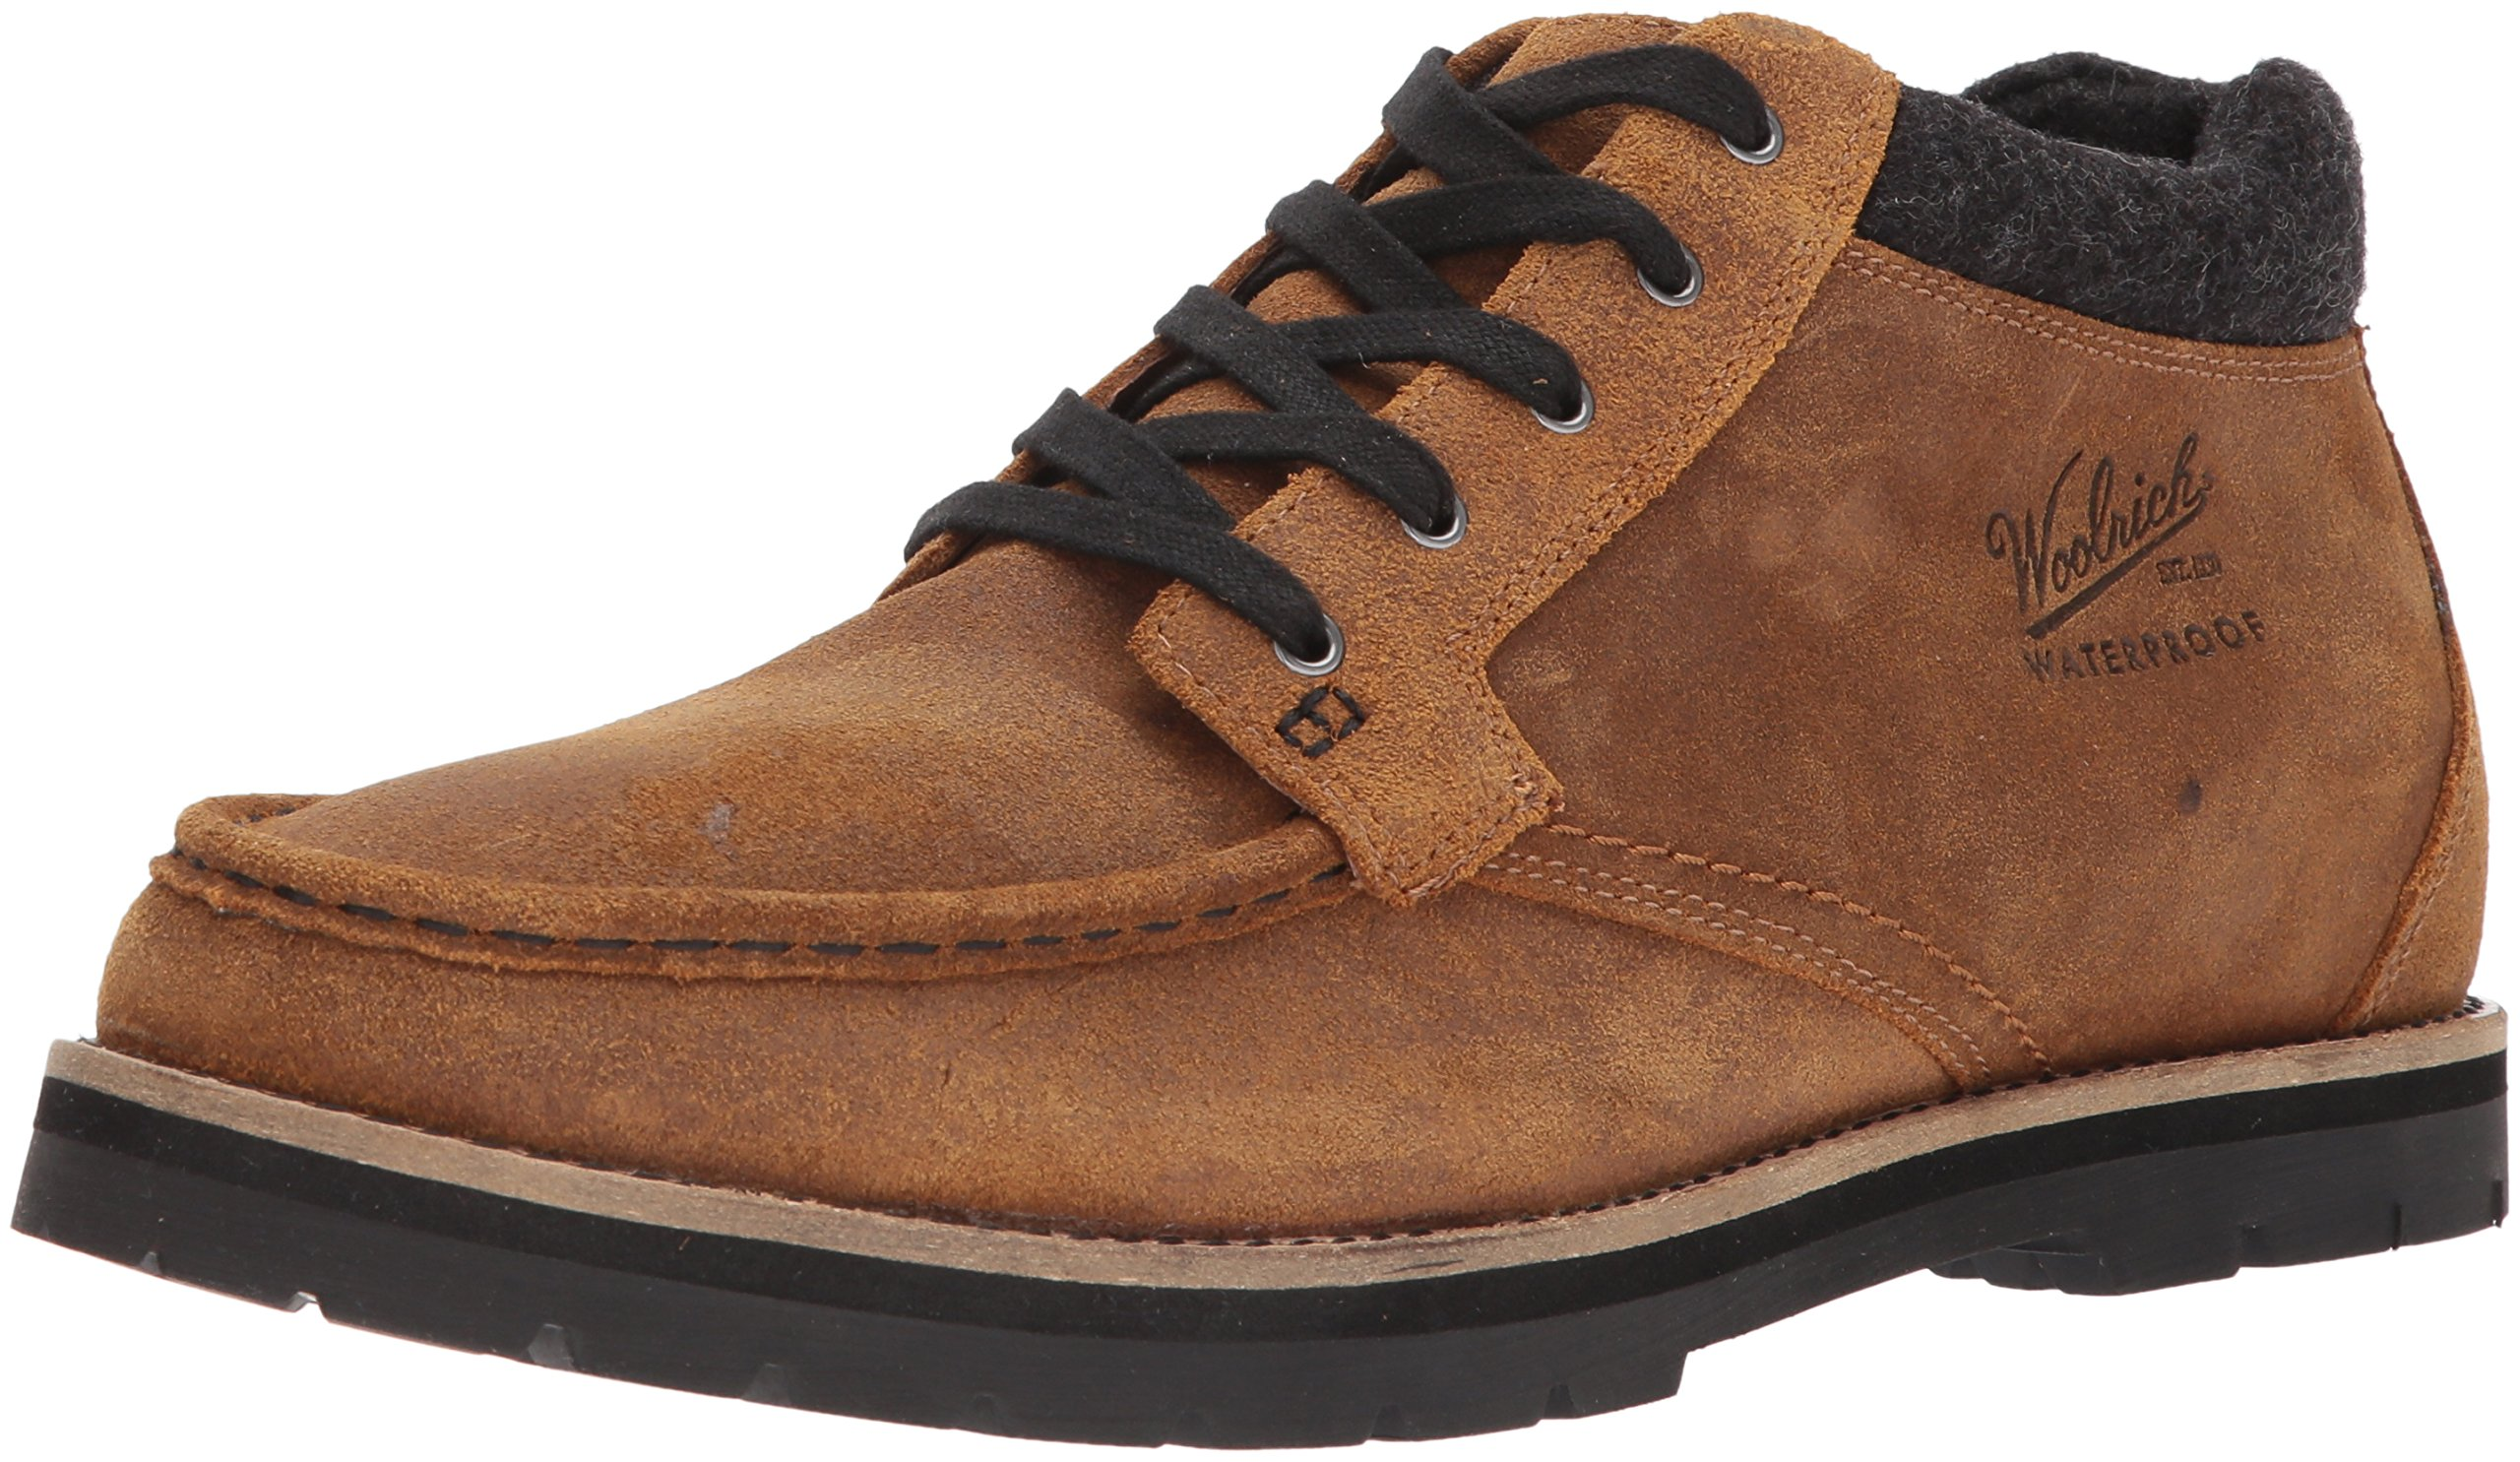 Woolrich Men's Yaktak Chukka Boot, Tenor, 9.5 M US